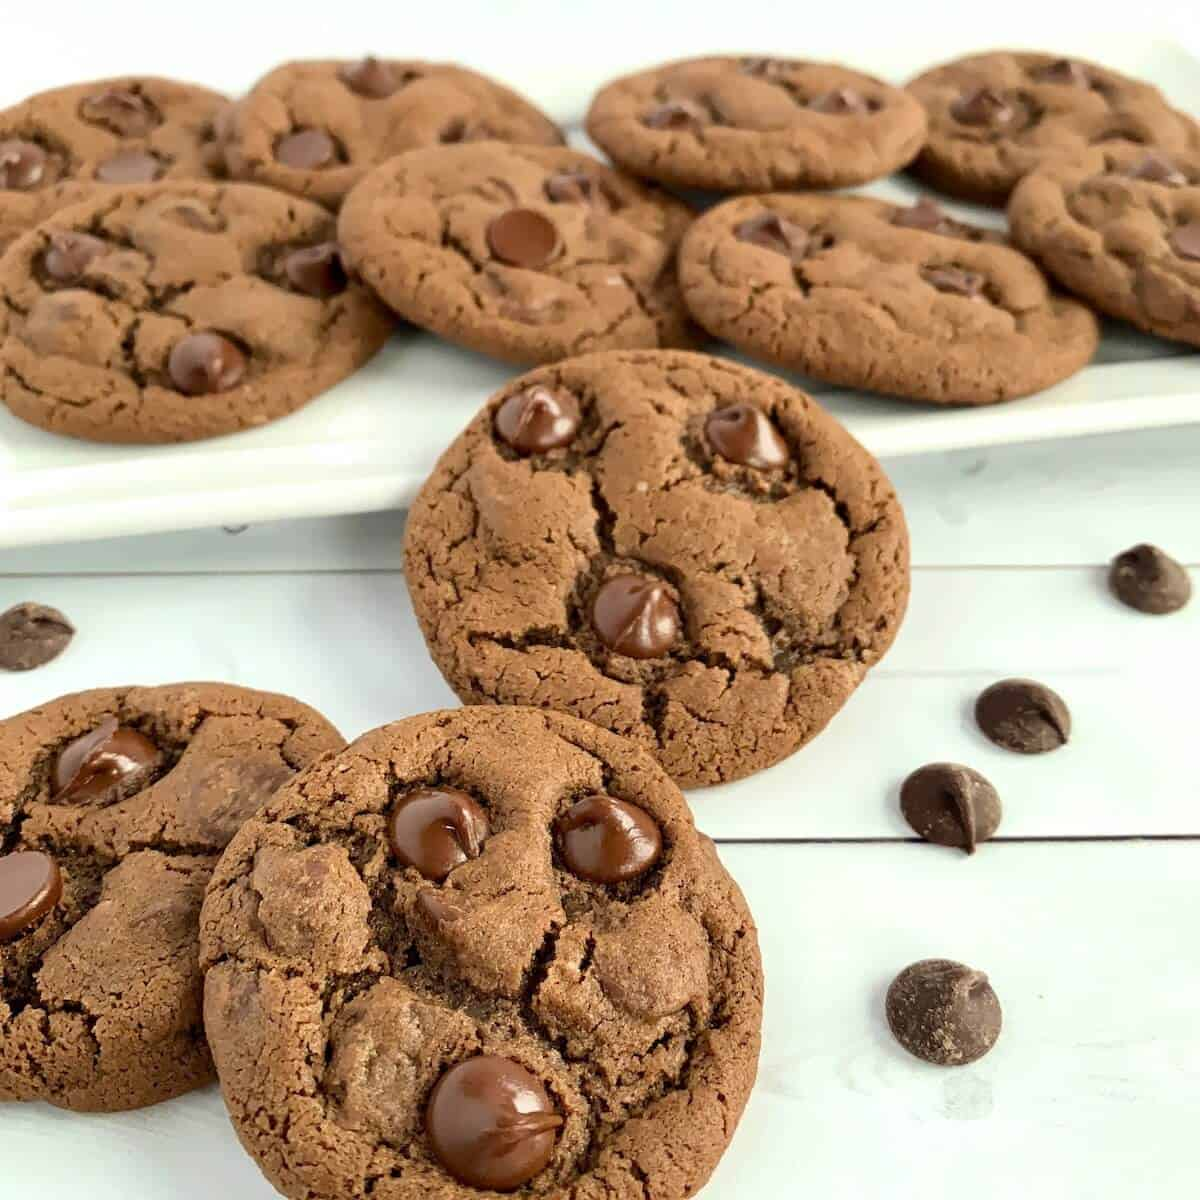 Chocolate Chocolate Chip cookies with white tray of cookies behind.